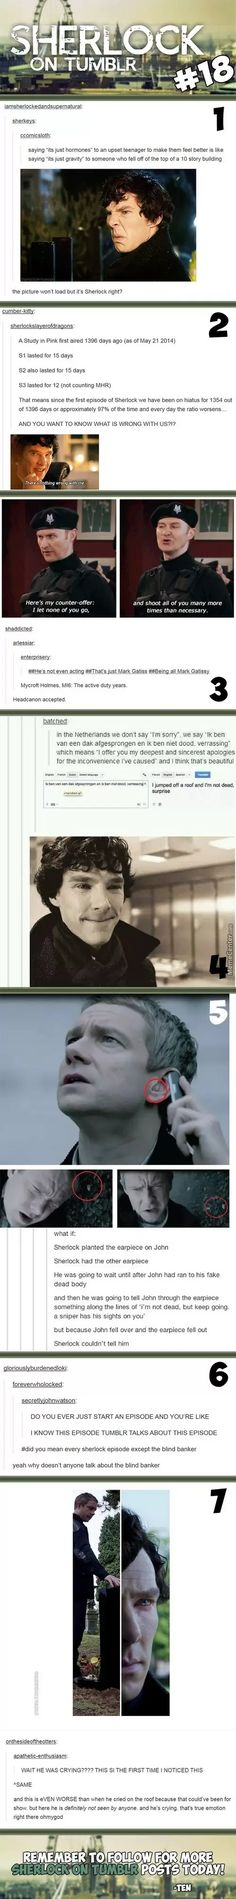 Sherlock On Tumblr #